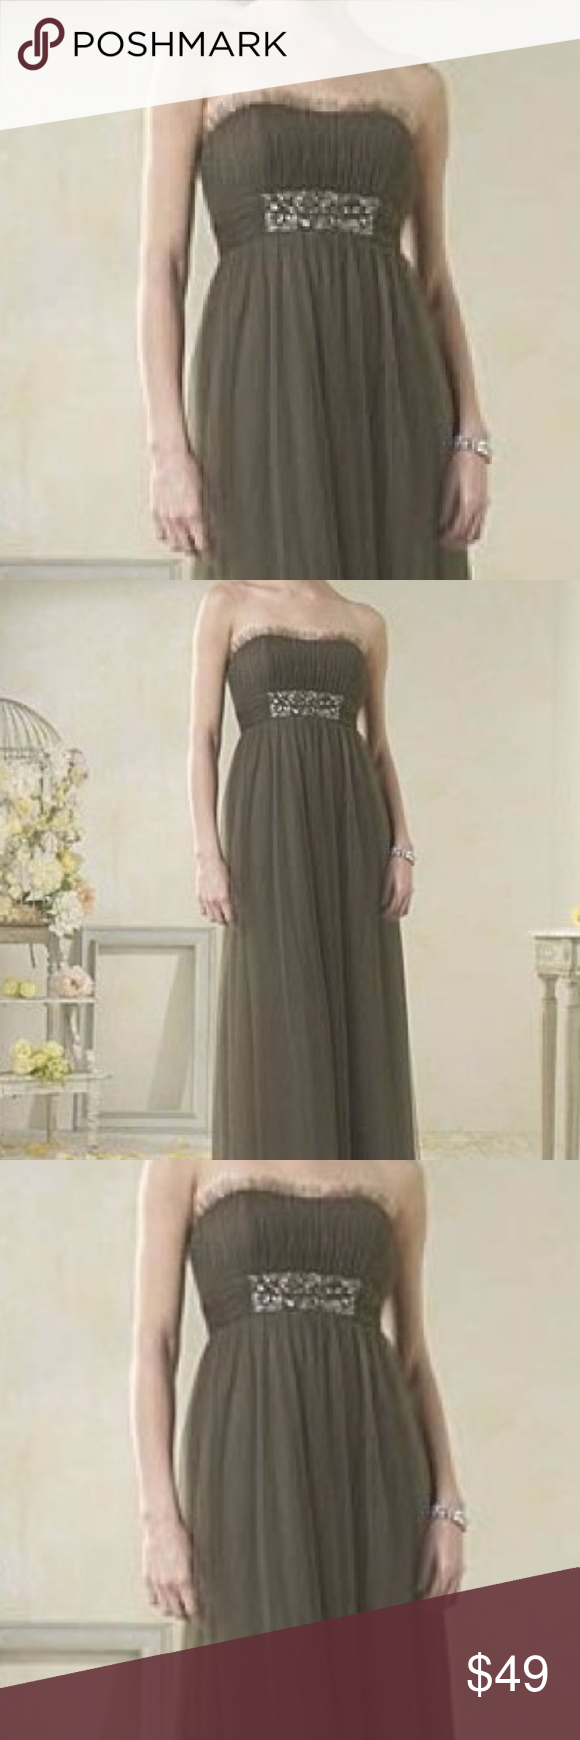 Alfred angelo bridesmaid dress style l boutique